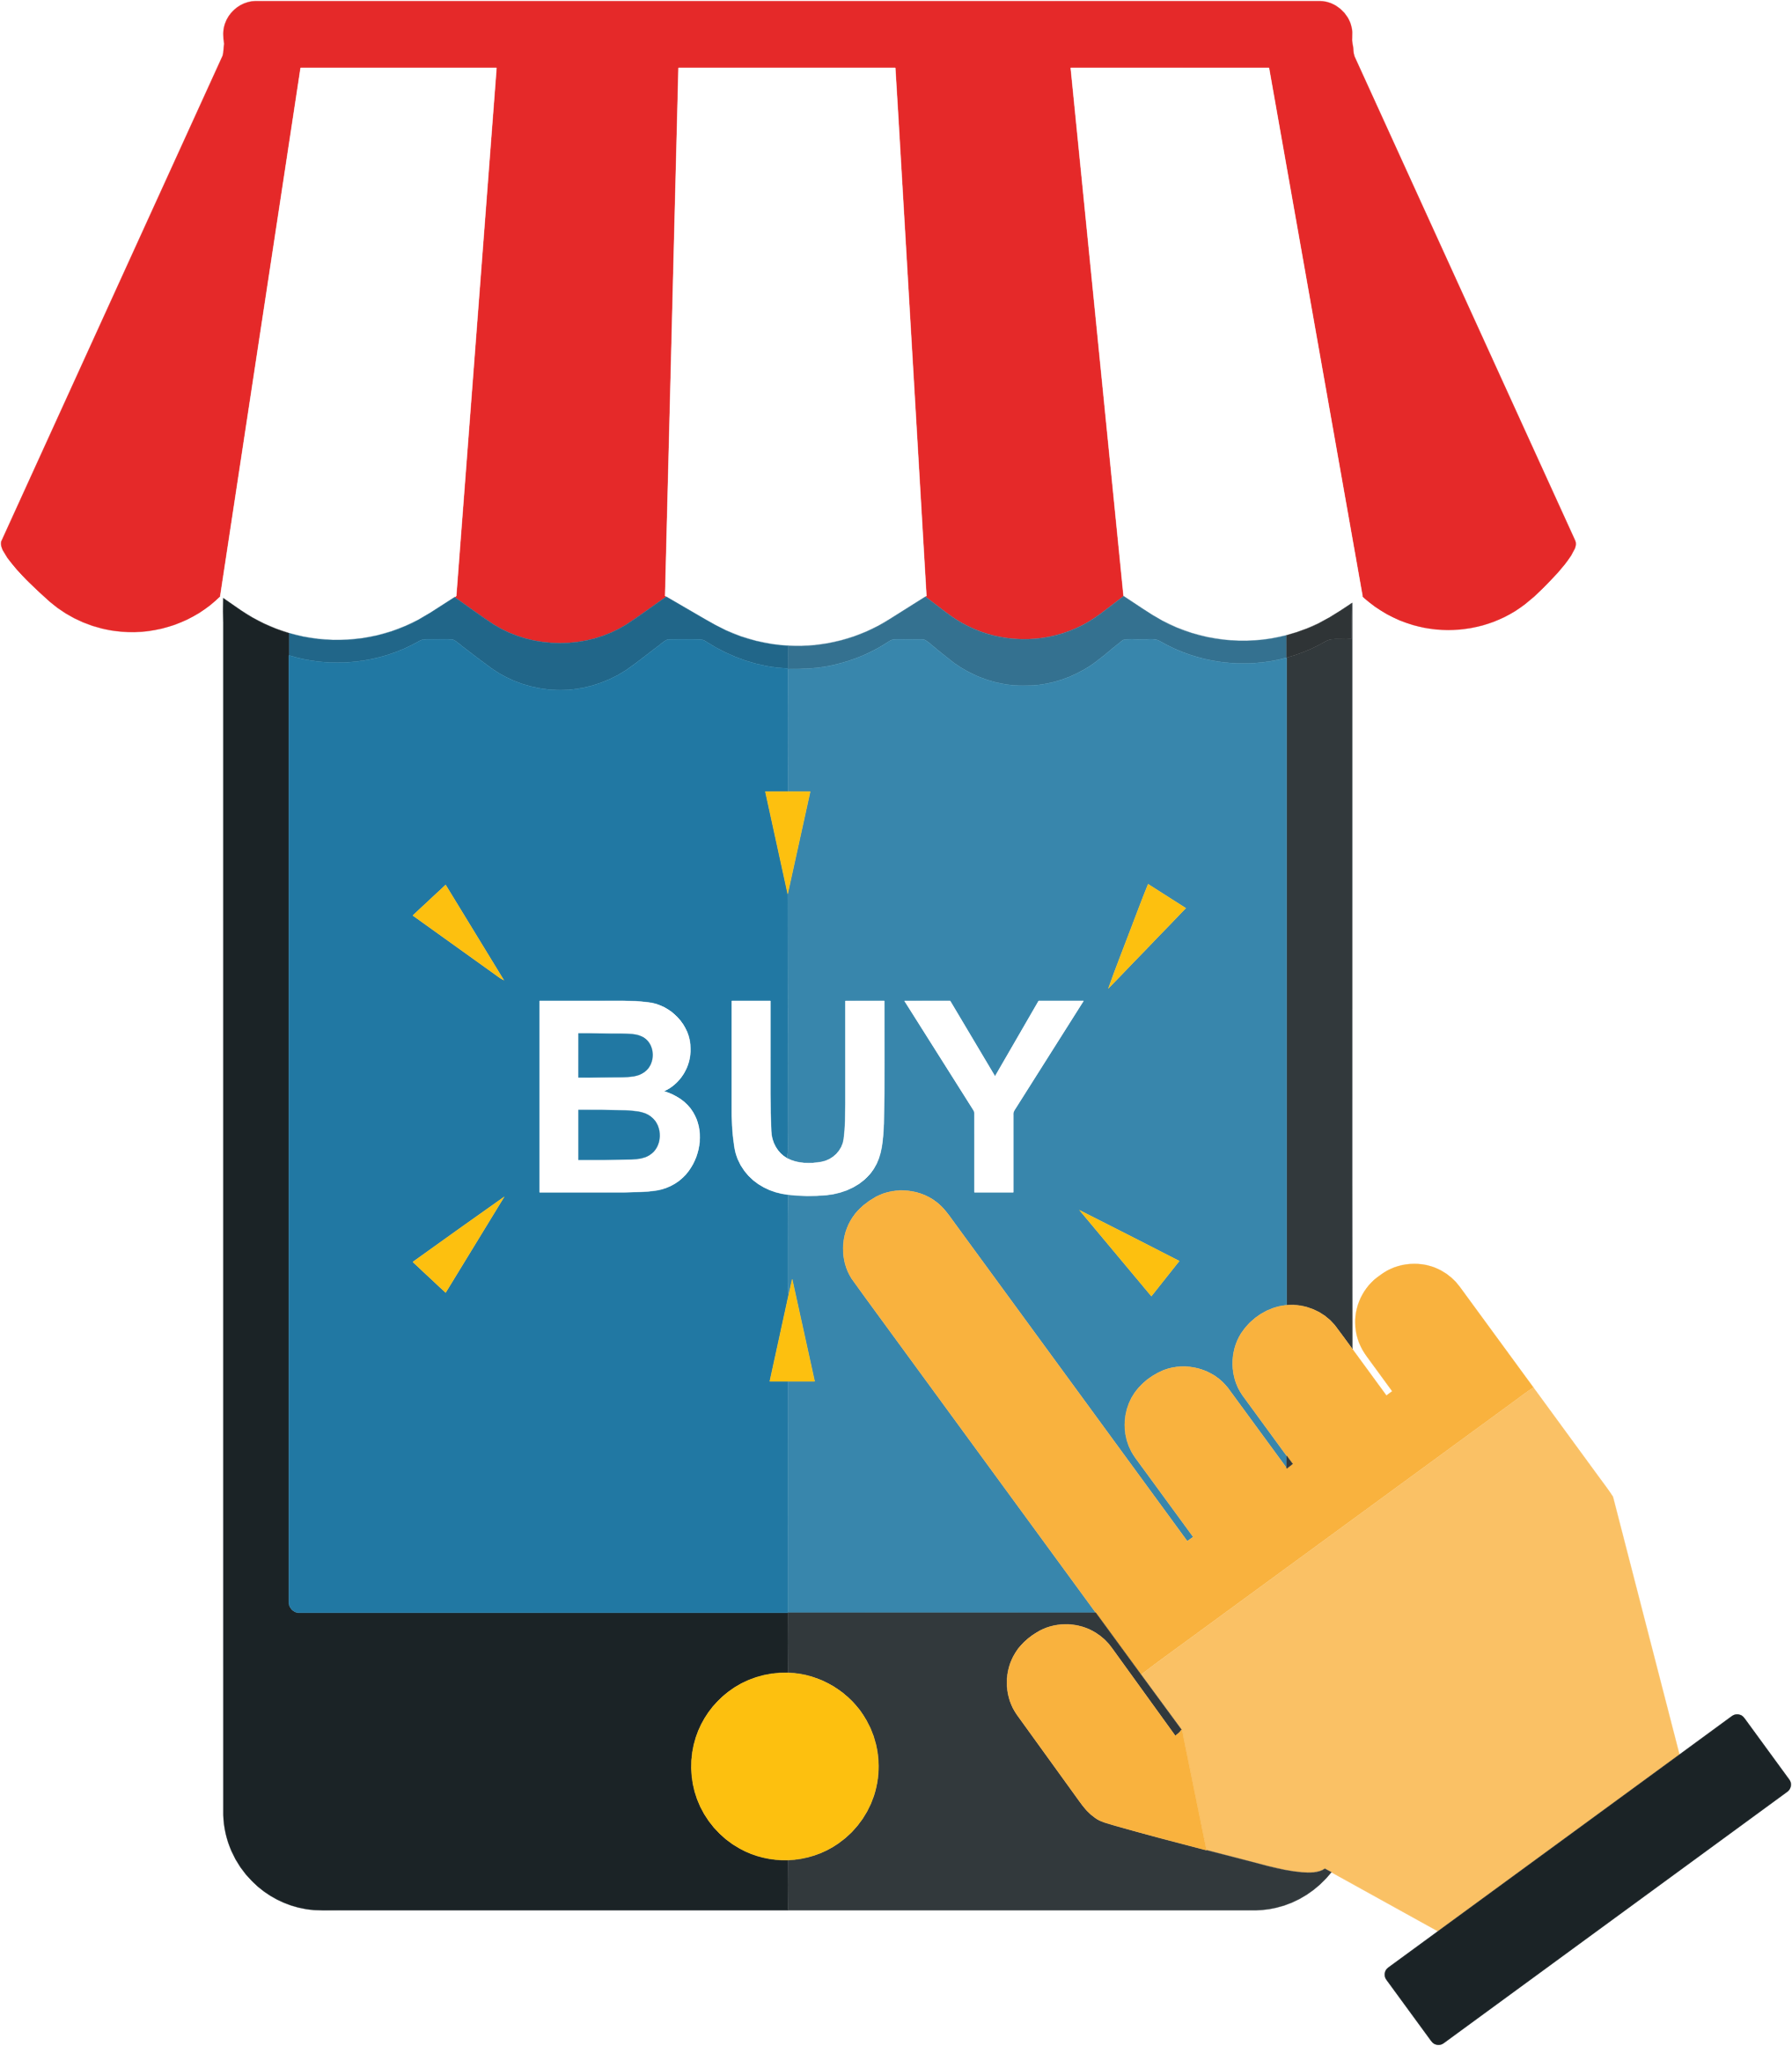 Shopping transparent. Png images pluspng big